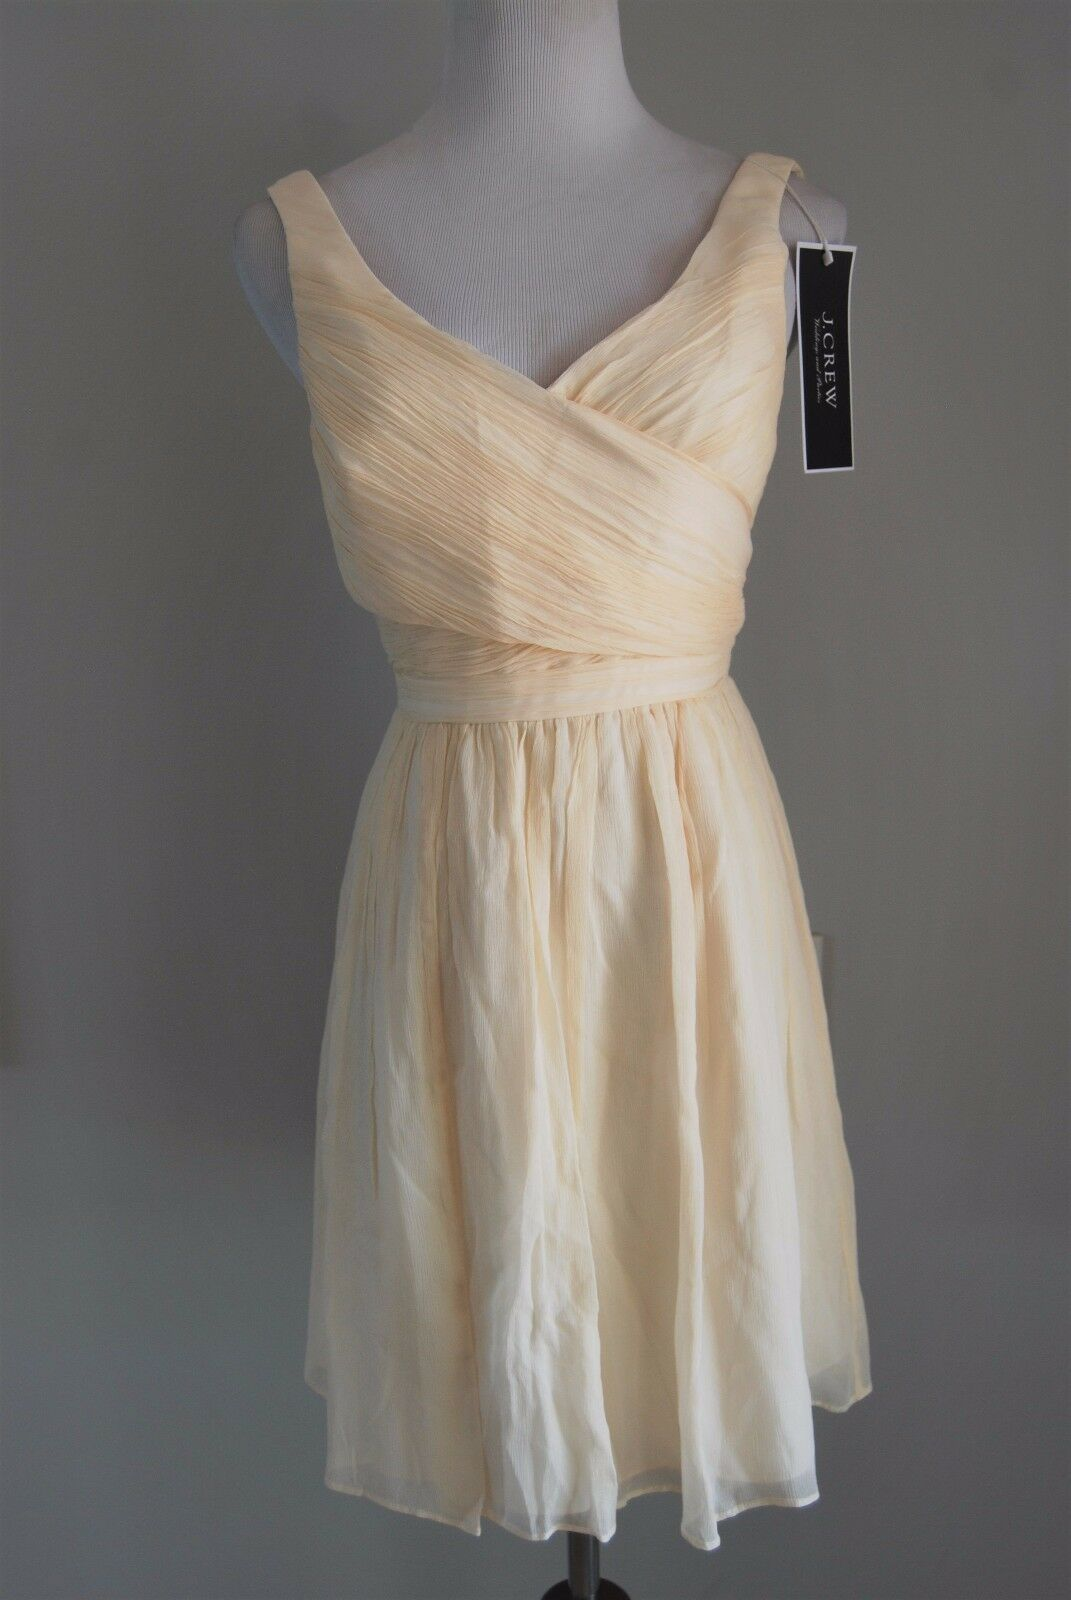 228 NEW J CREW Champagne Sleeveless pleated top HEIDI DRESS Bridesmaid Size 2P